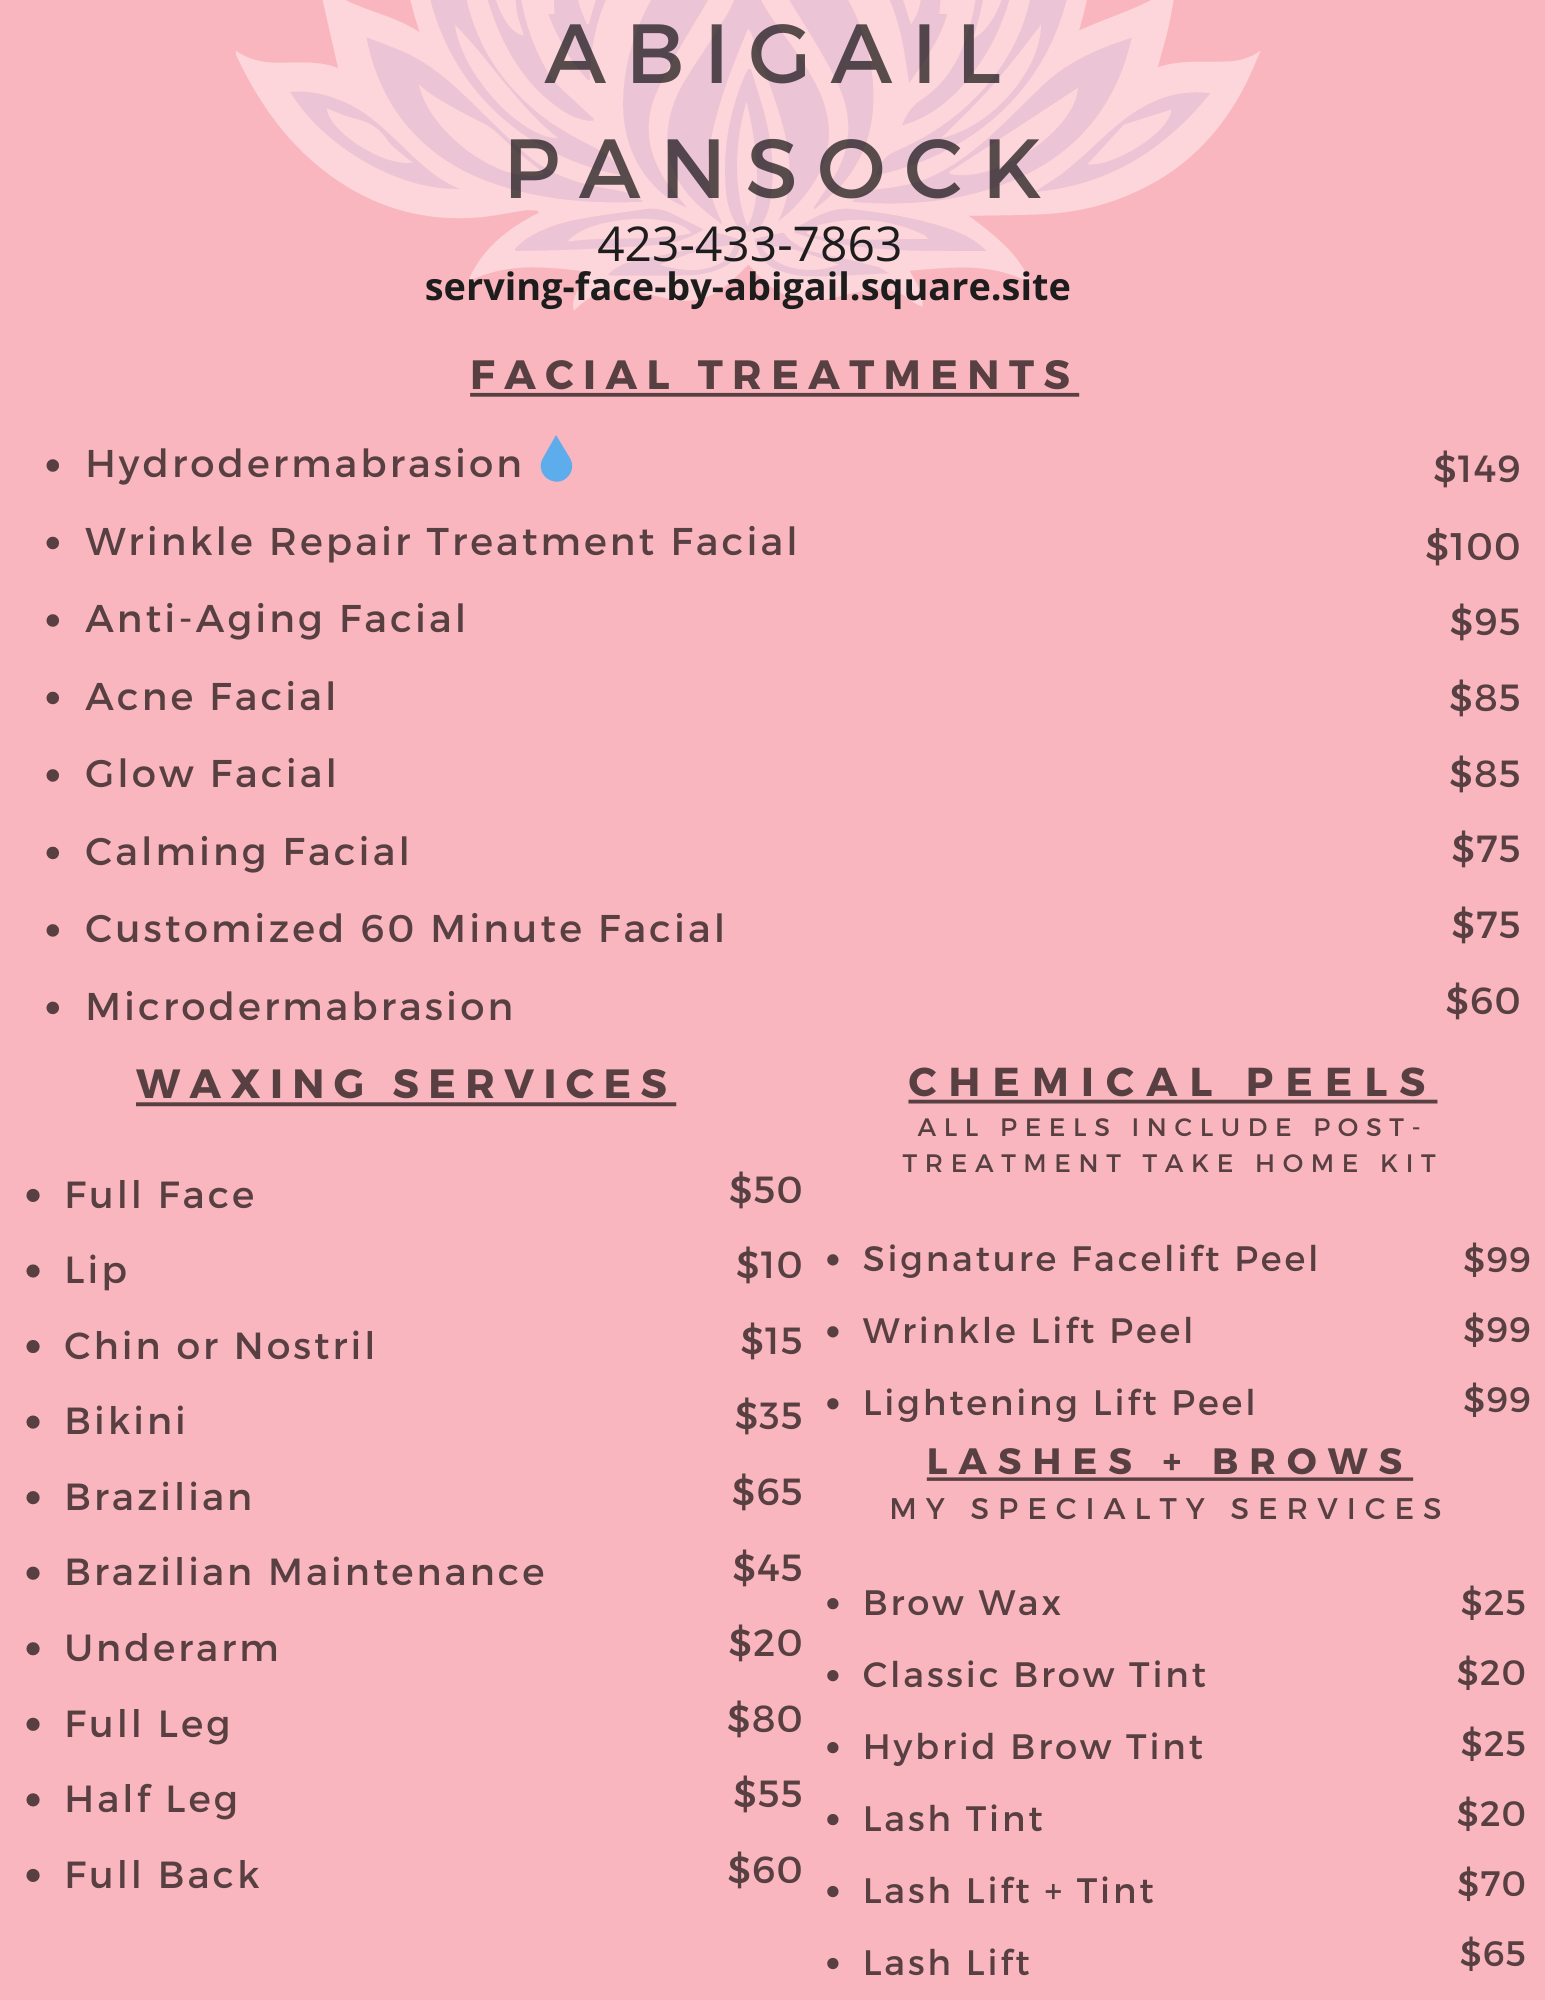 aesthetic services by Abigail Pansock